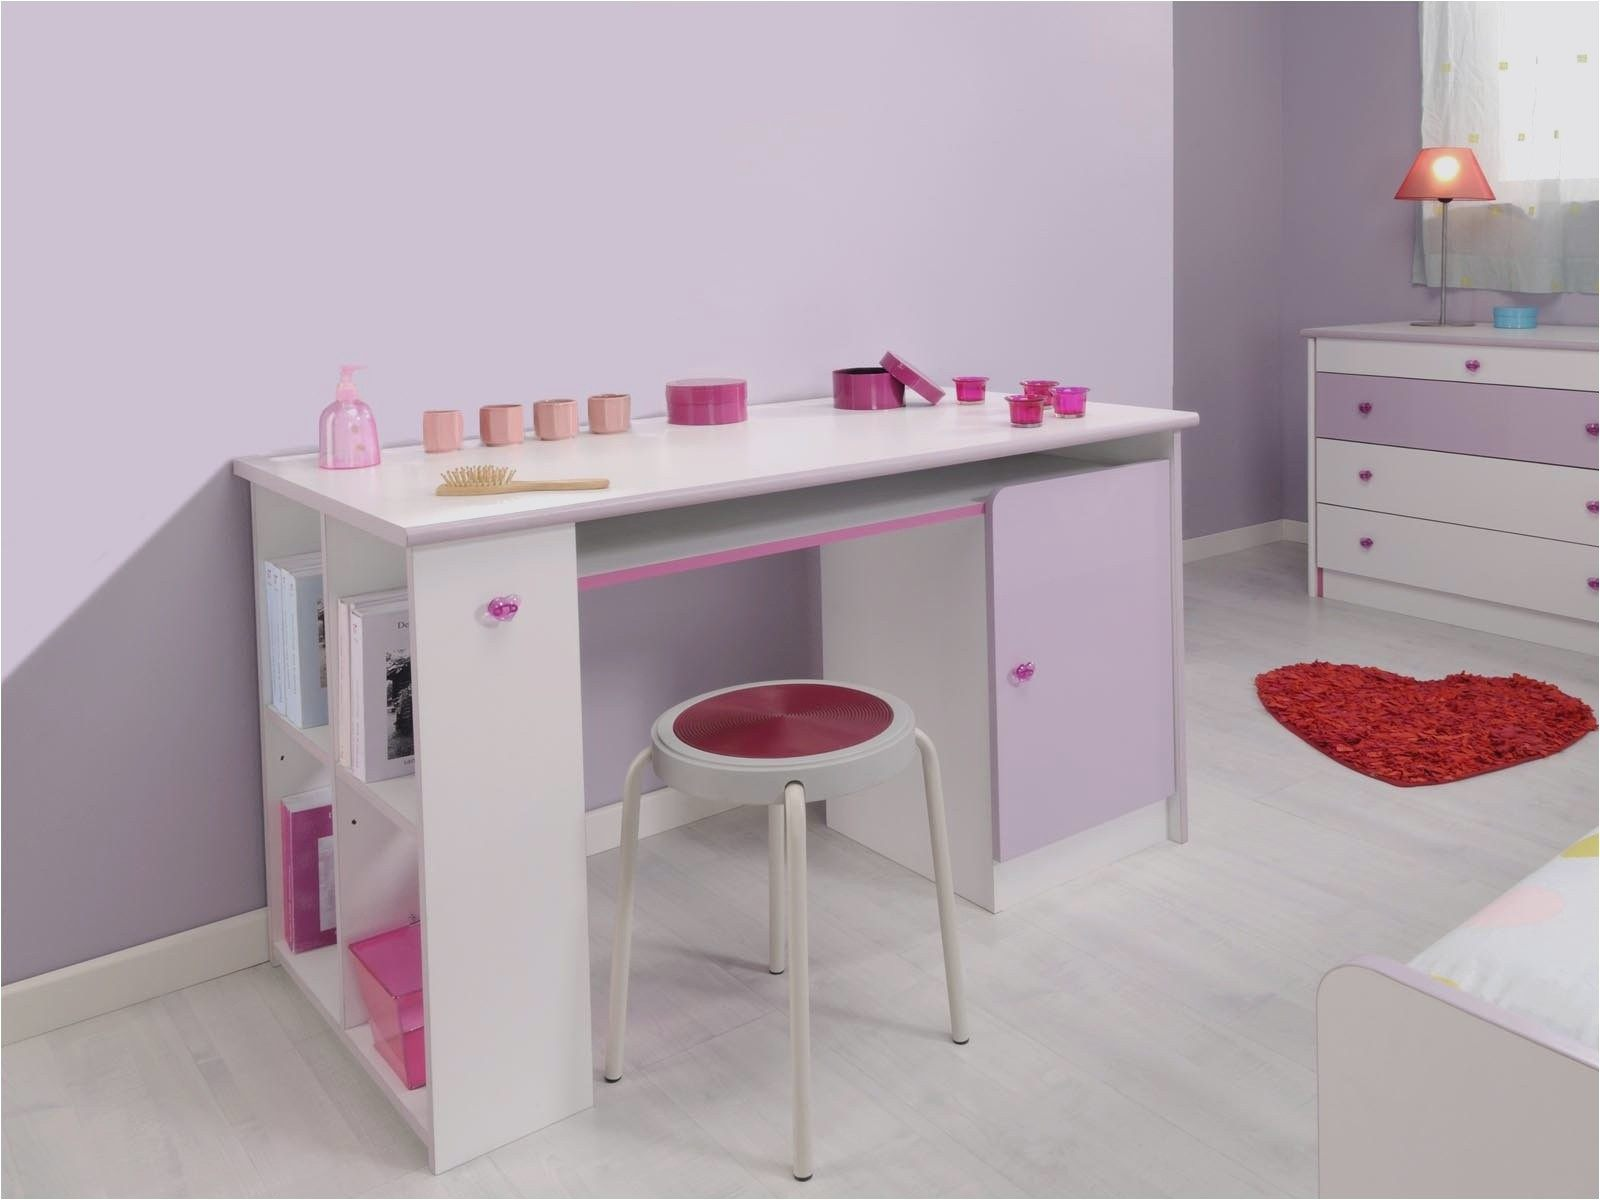 Lit Bebe Fille Agréable Chaise Chambre Bebe élégant Chaise Bureau Fille Chaise De Bureau